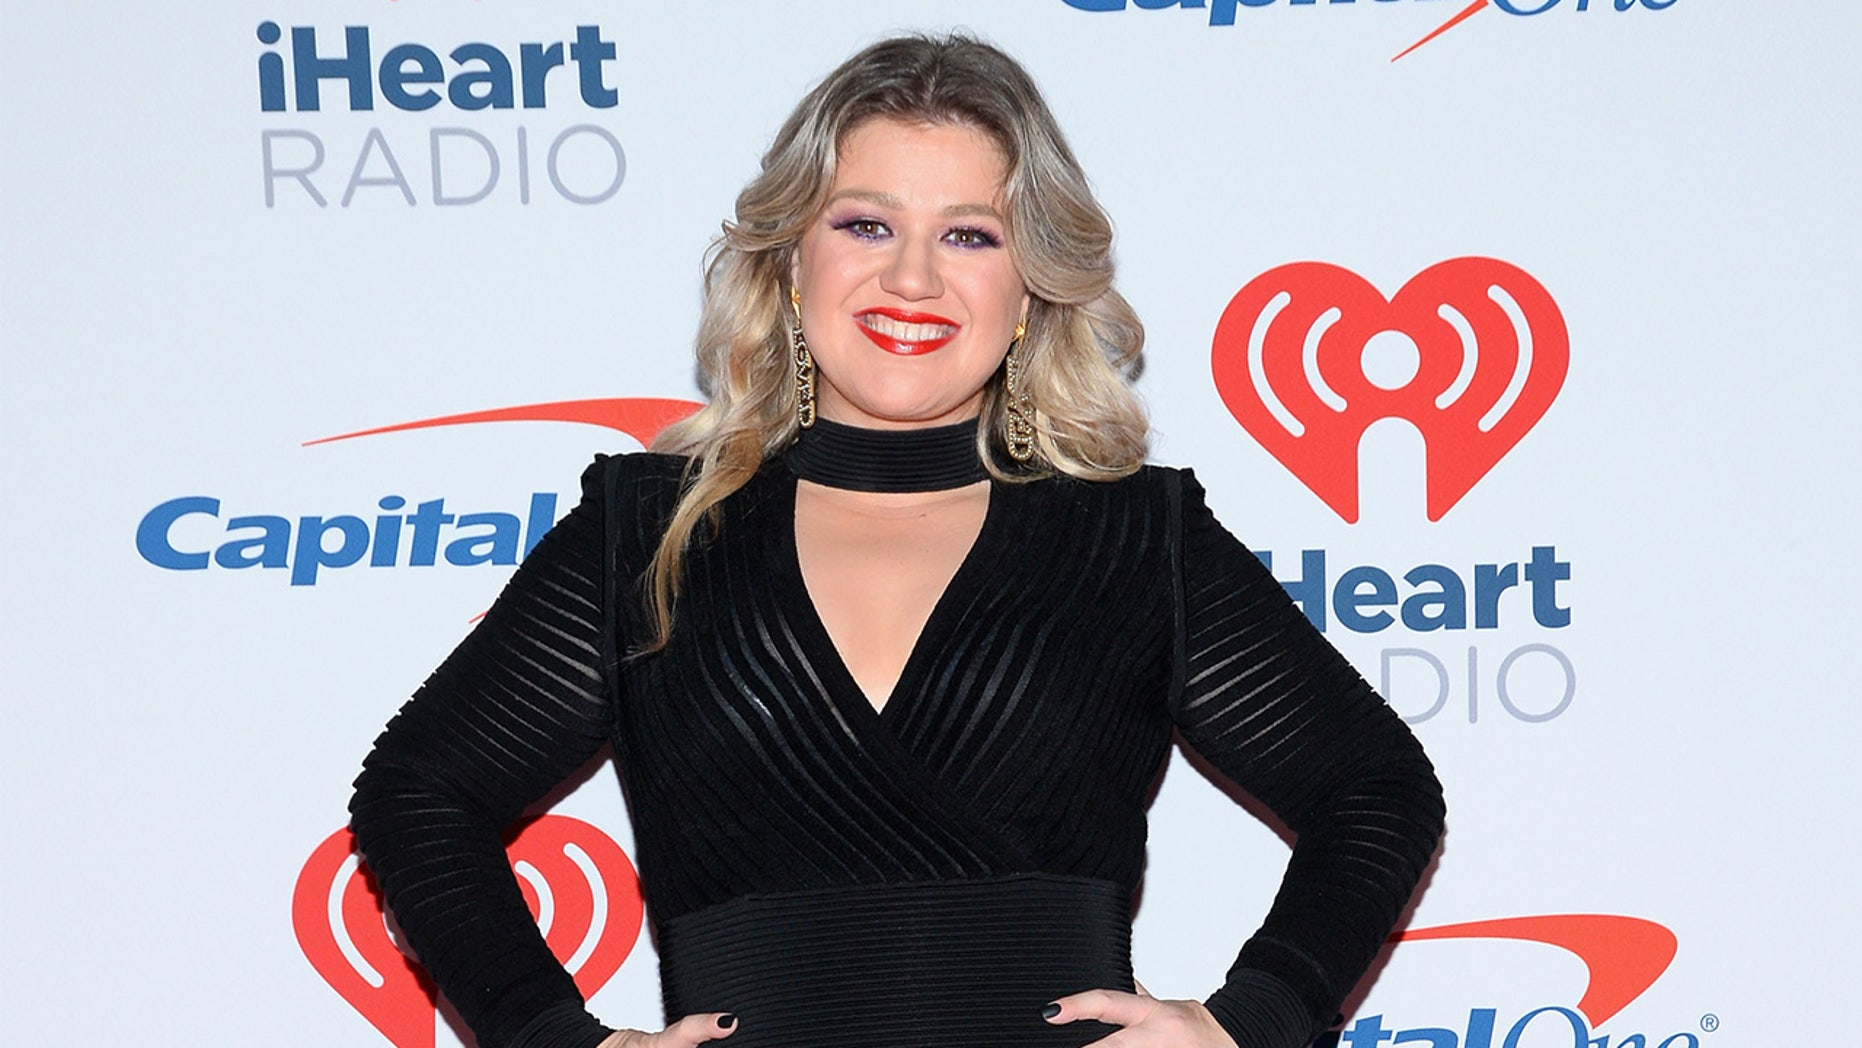 Former 'American Idol' star Kelly Clarkson revealed some holiday weight gain.